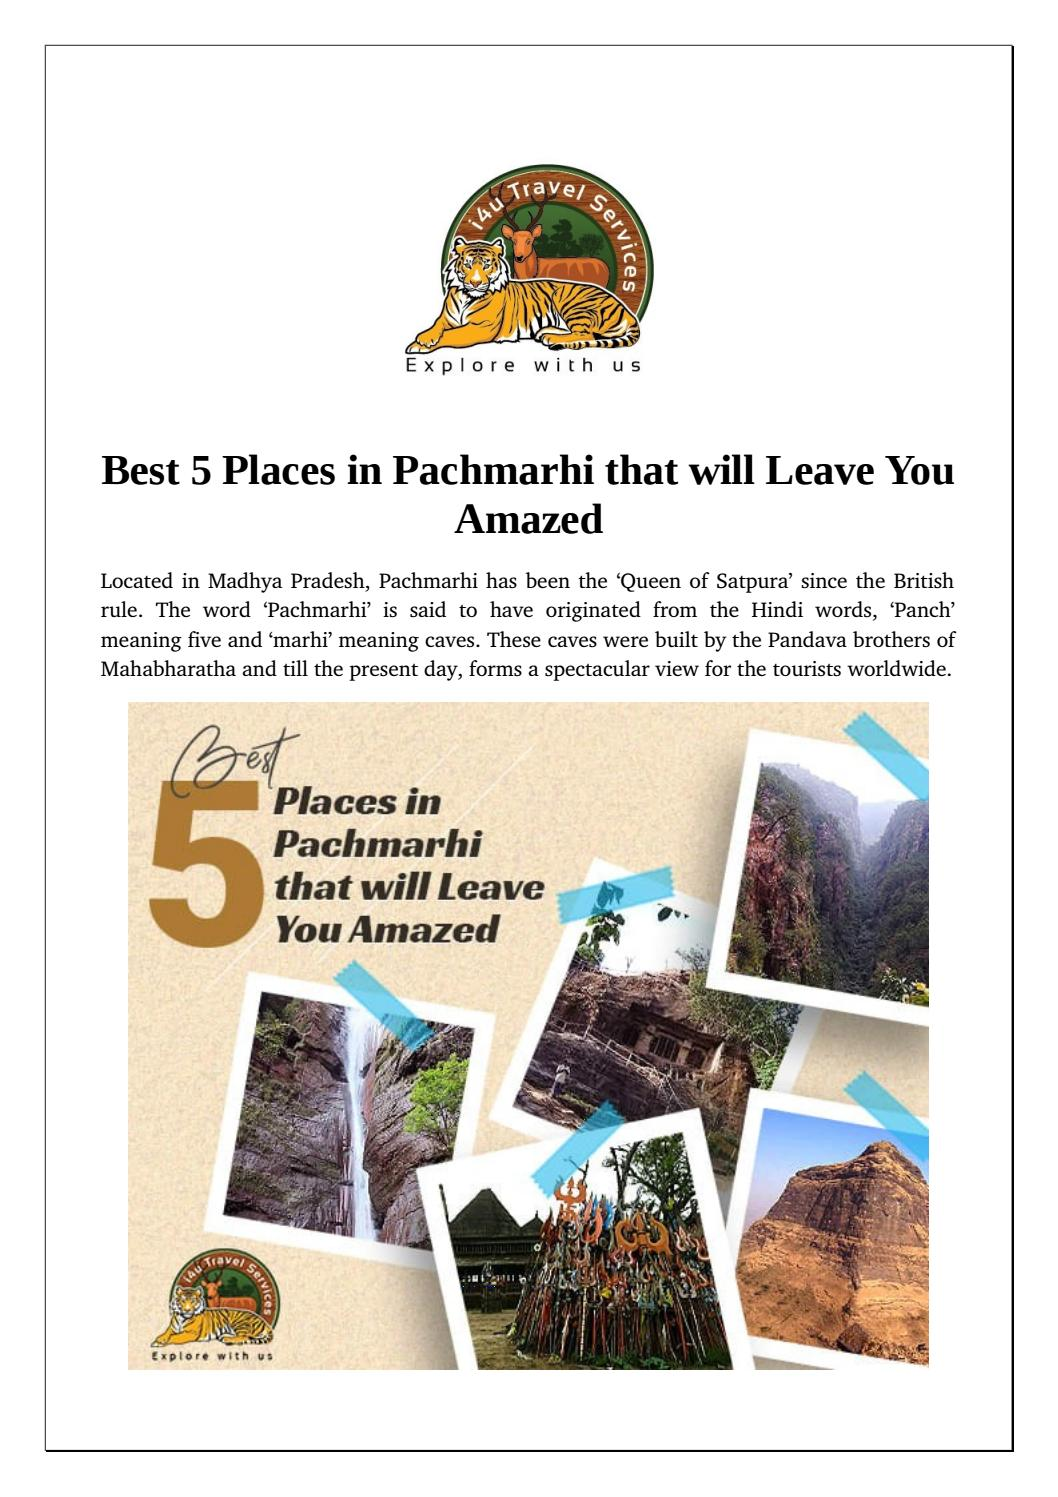 Best 5 Places in Pachmarhi that will Leave You Amazed by i4u Travel - issuu